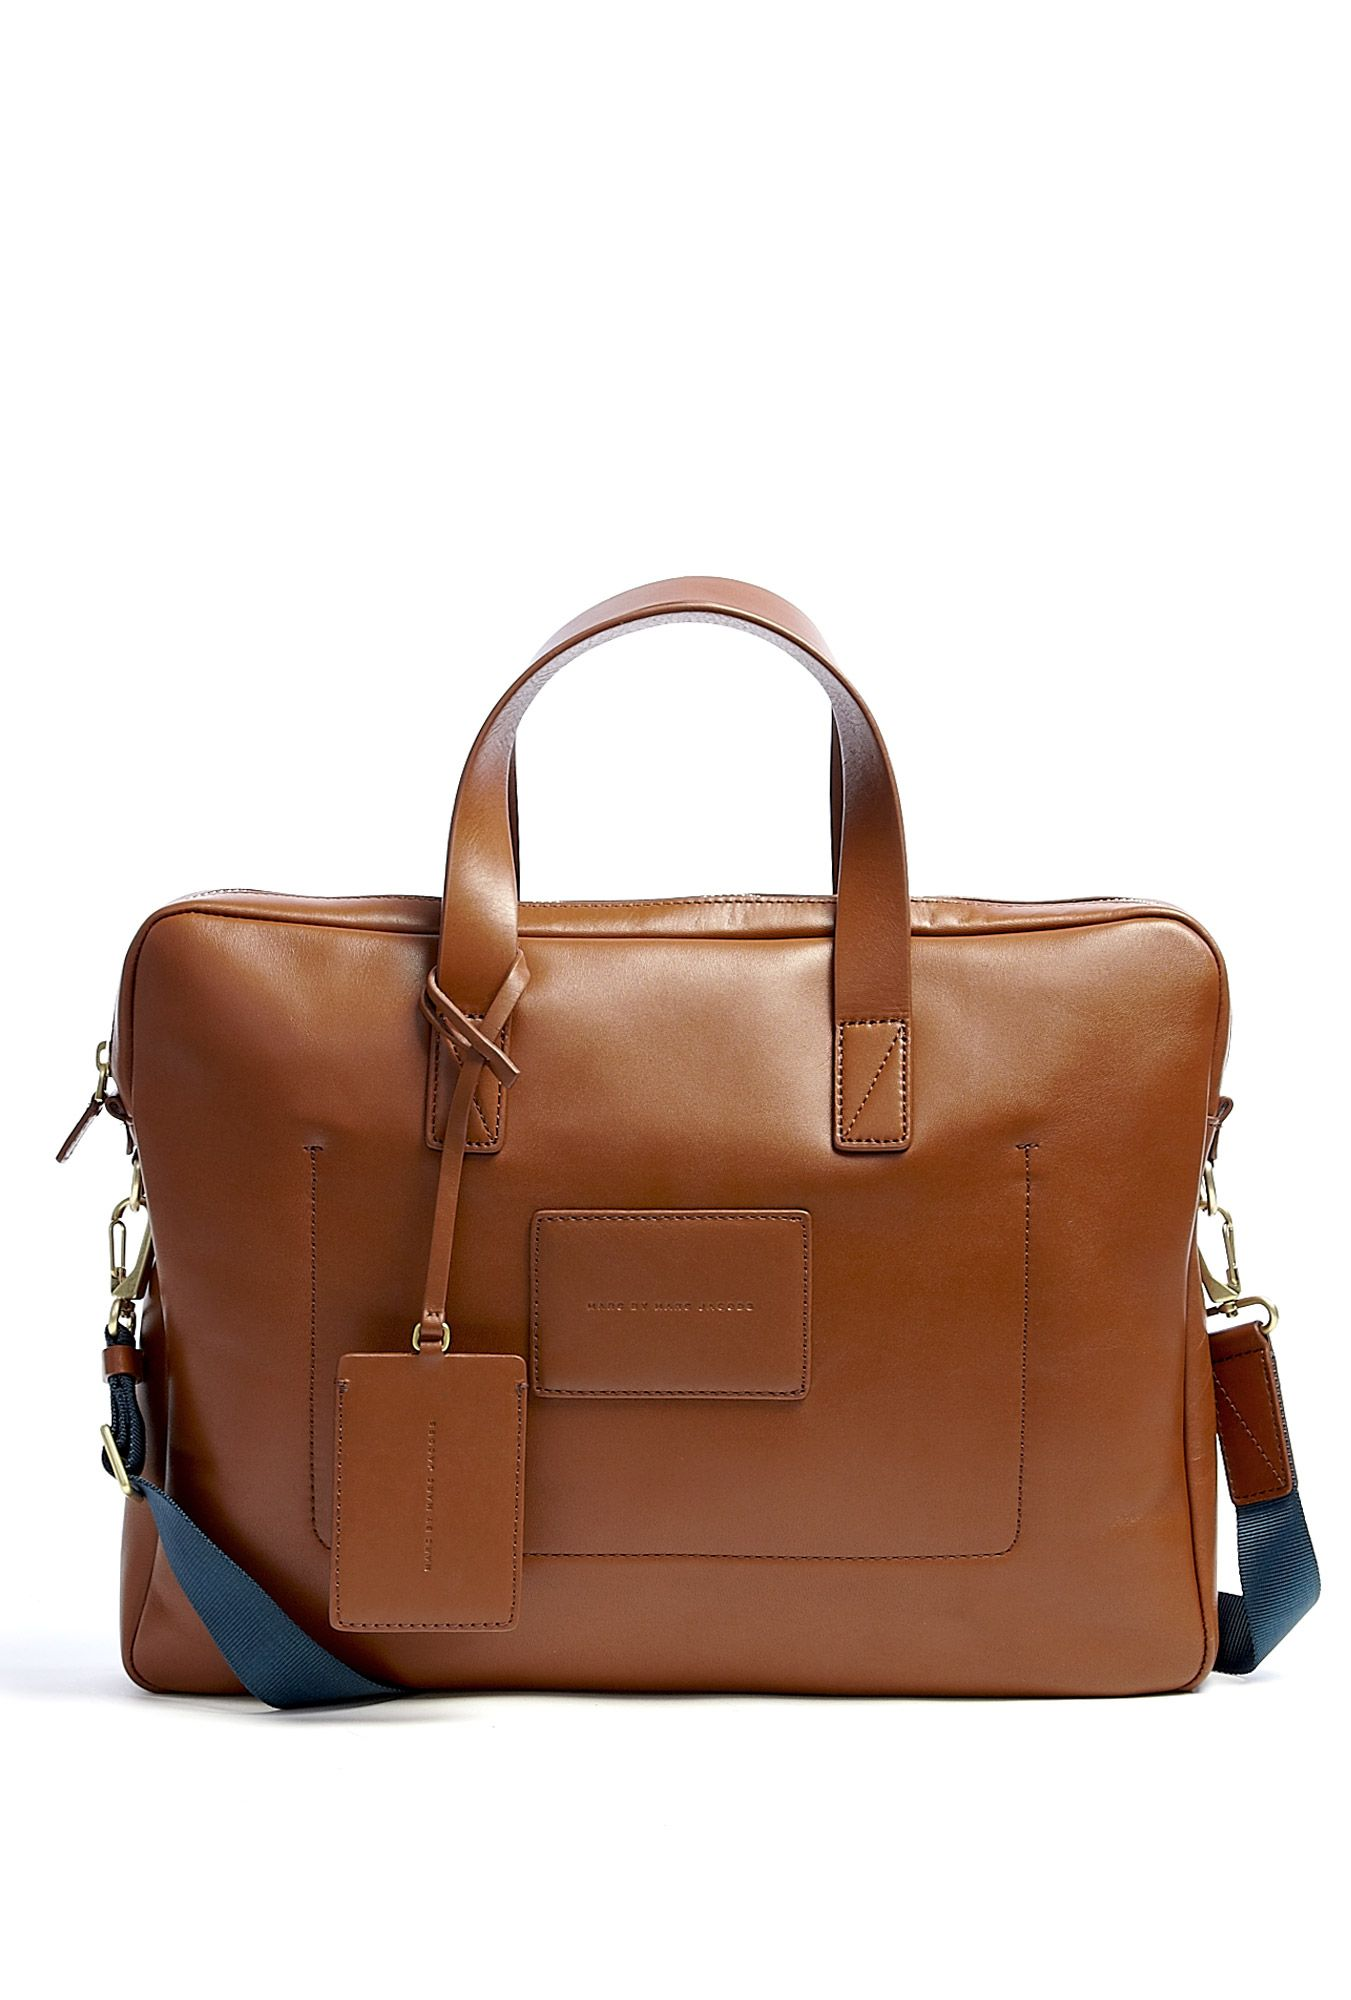 Marc by Marc Jacobs leather briefcase  fc58d1831aa43